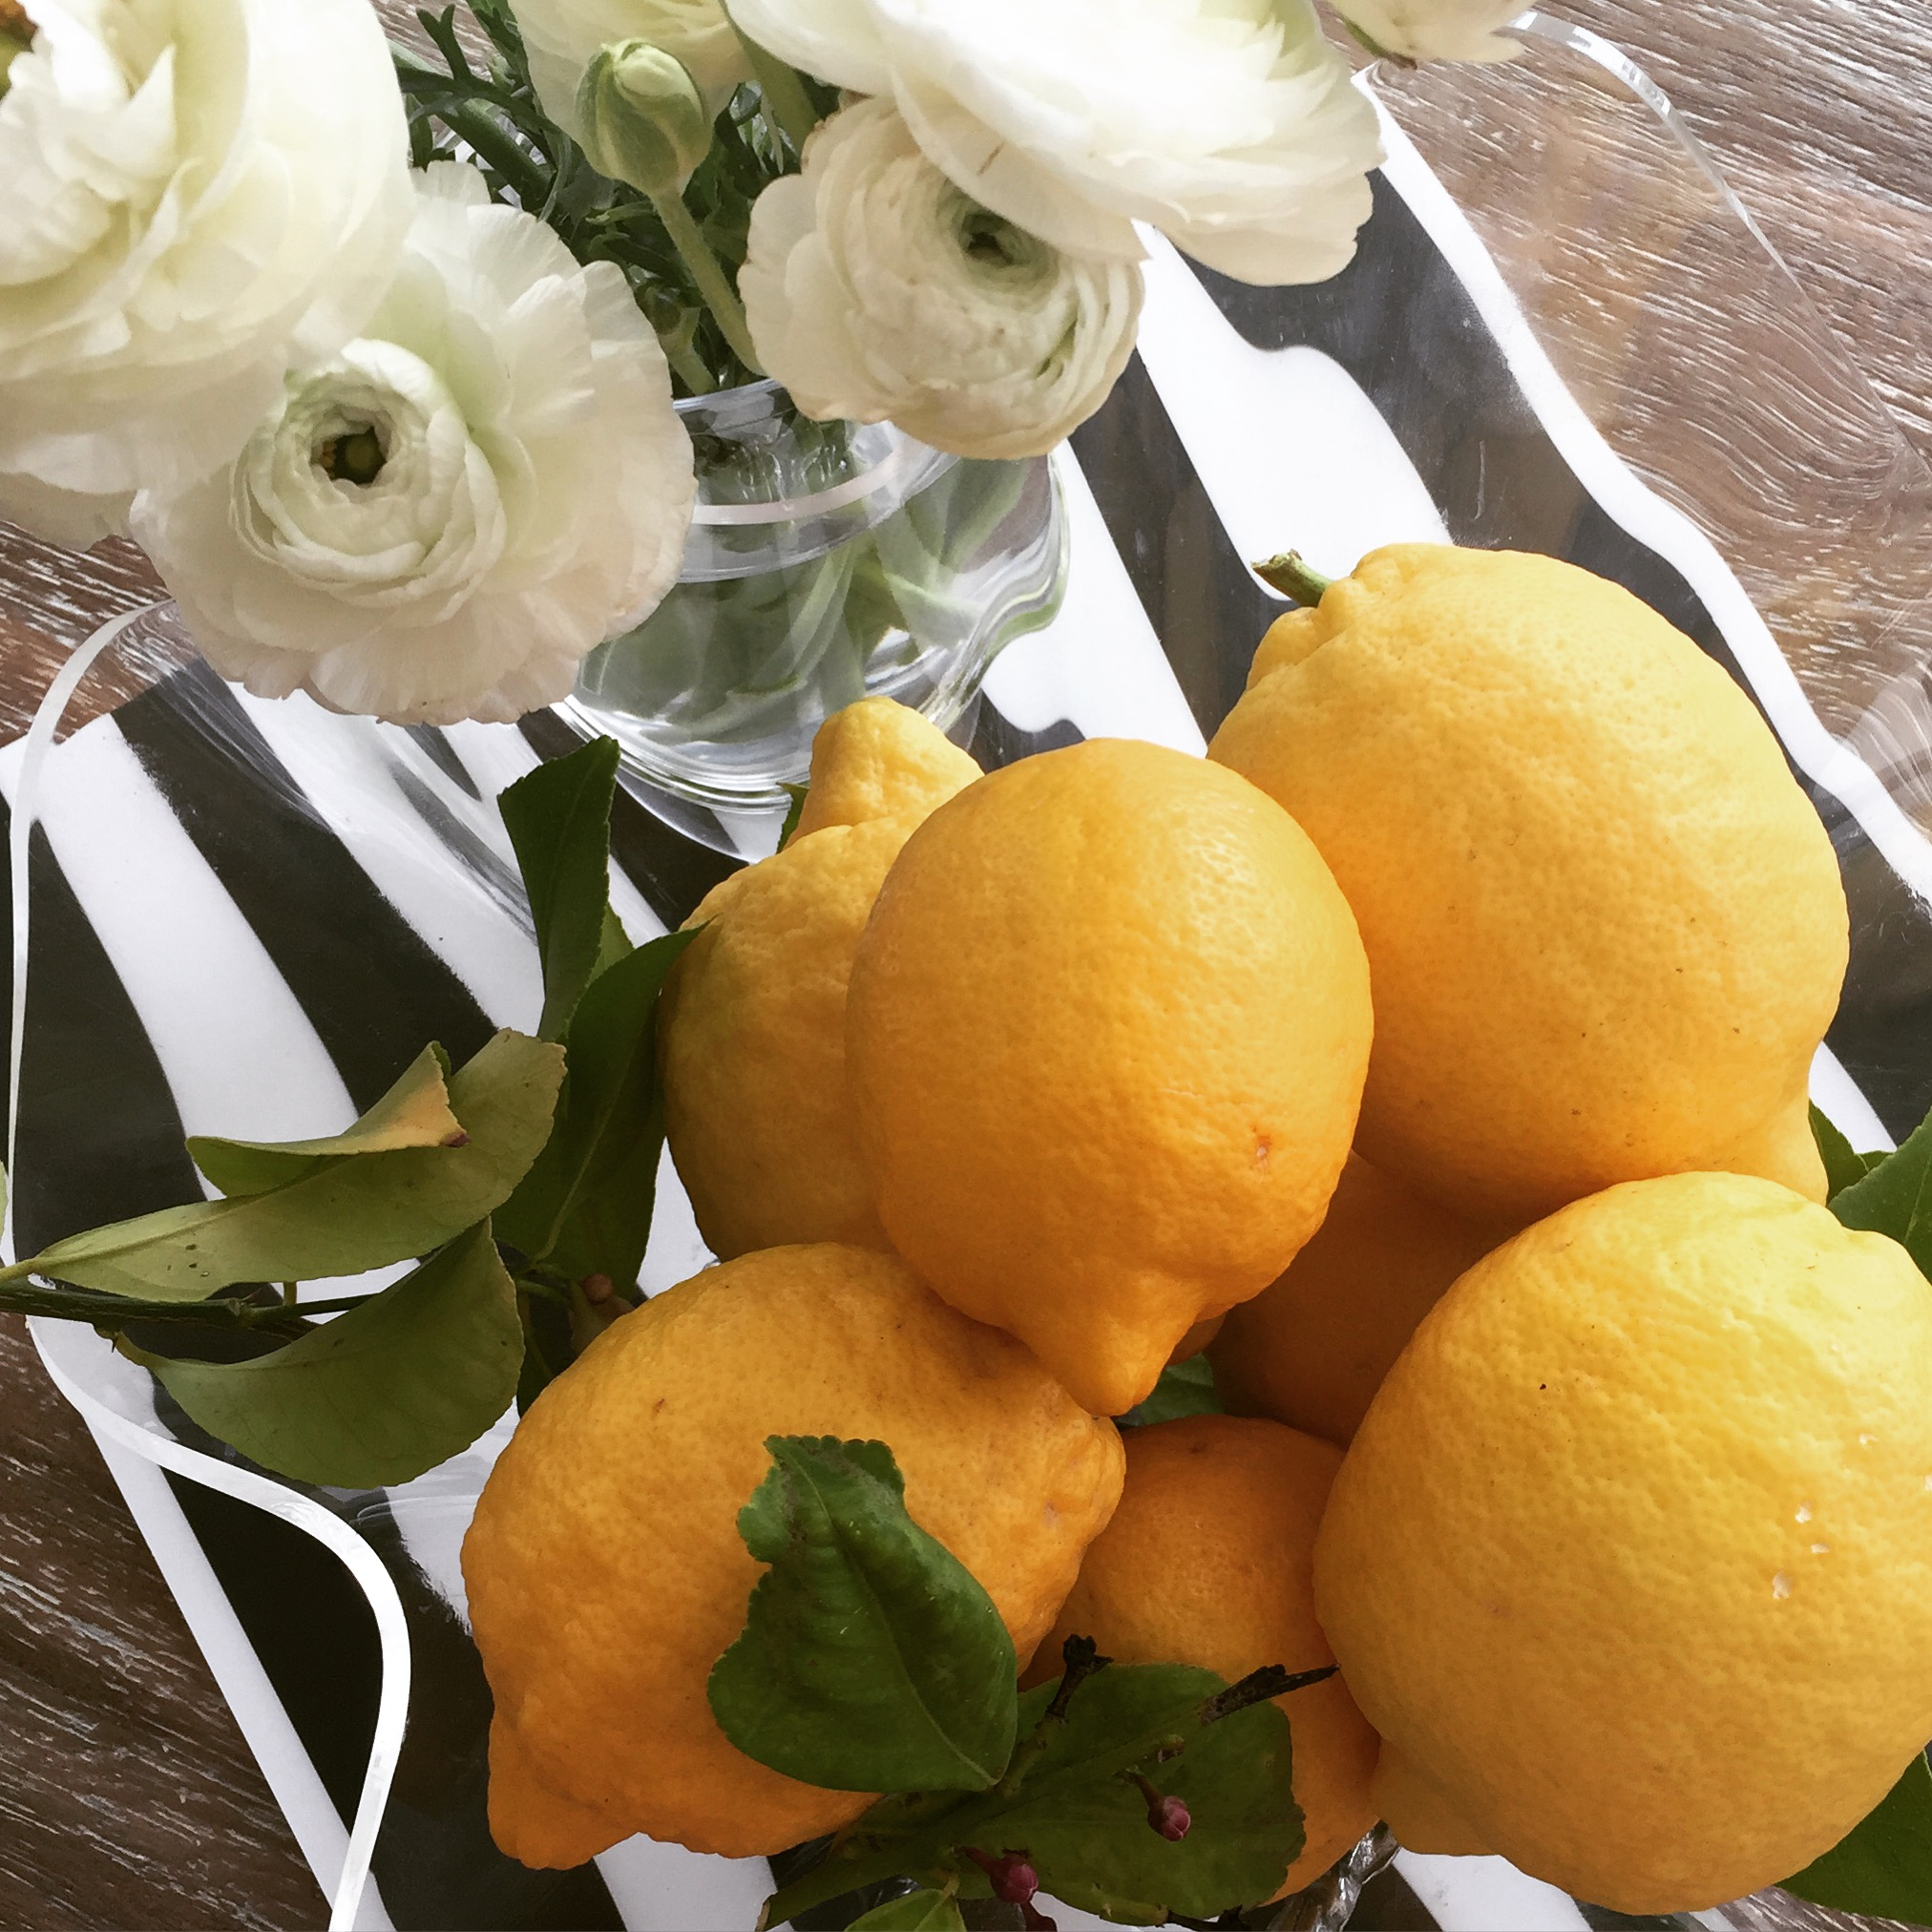 When life gives your lemons, make a lemonade relay race for your kiddos. A fun Spring activity to do at home. www.ChefShayna.com